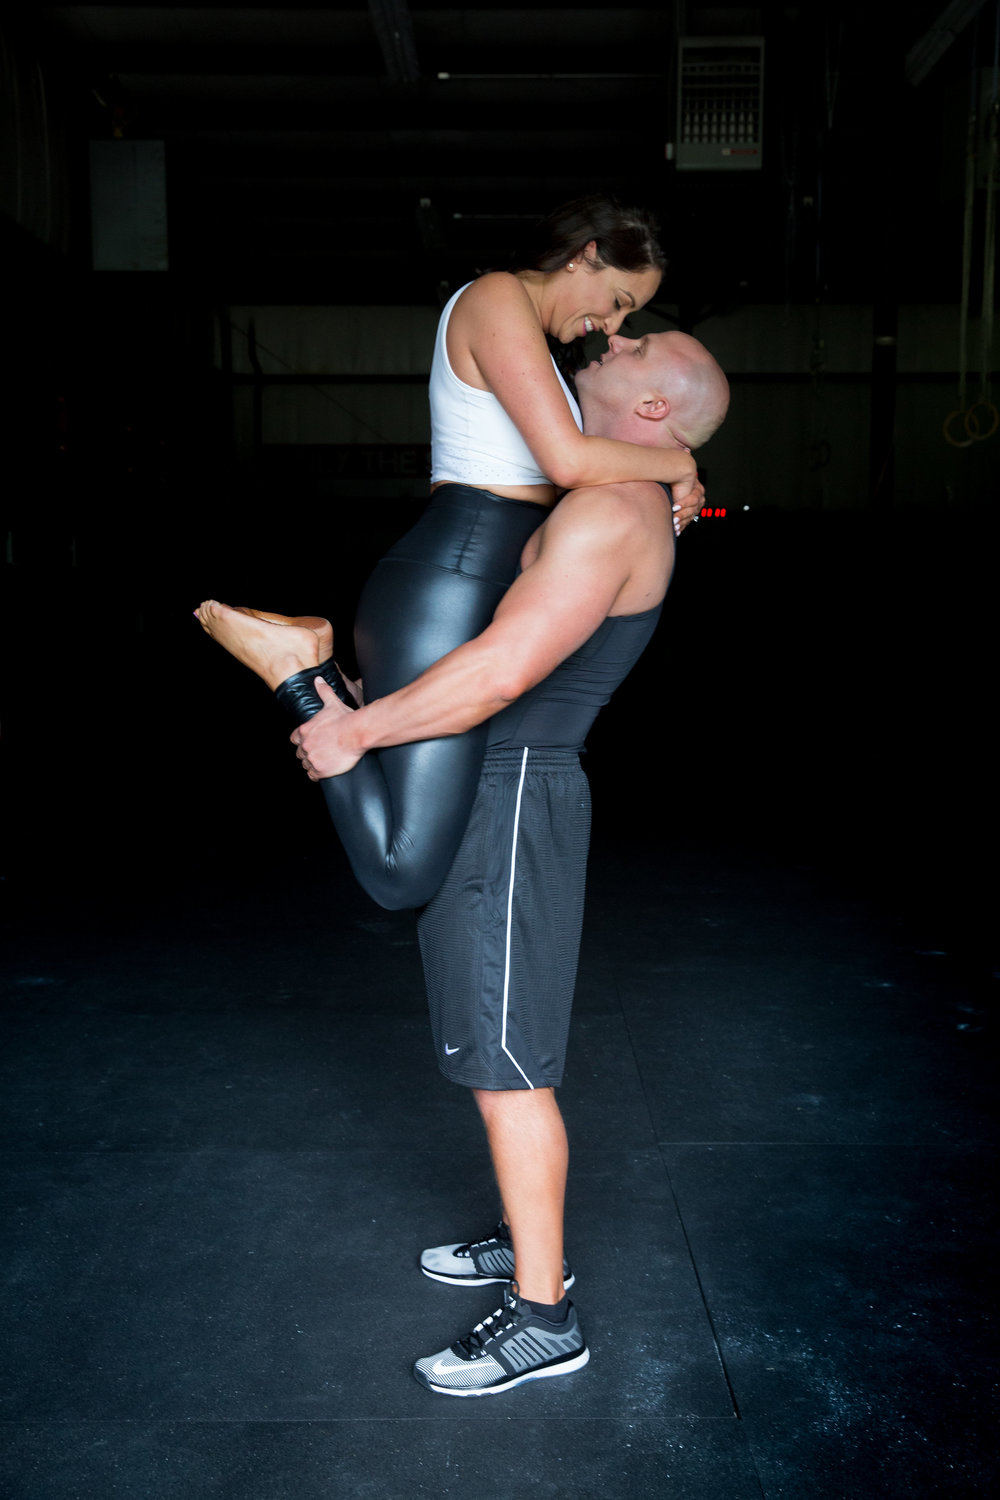 4-eyes-photography-engagement-shoot-couples-working-out-046.jpg